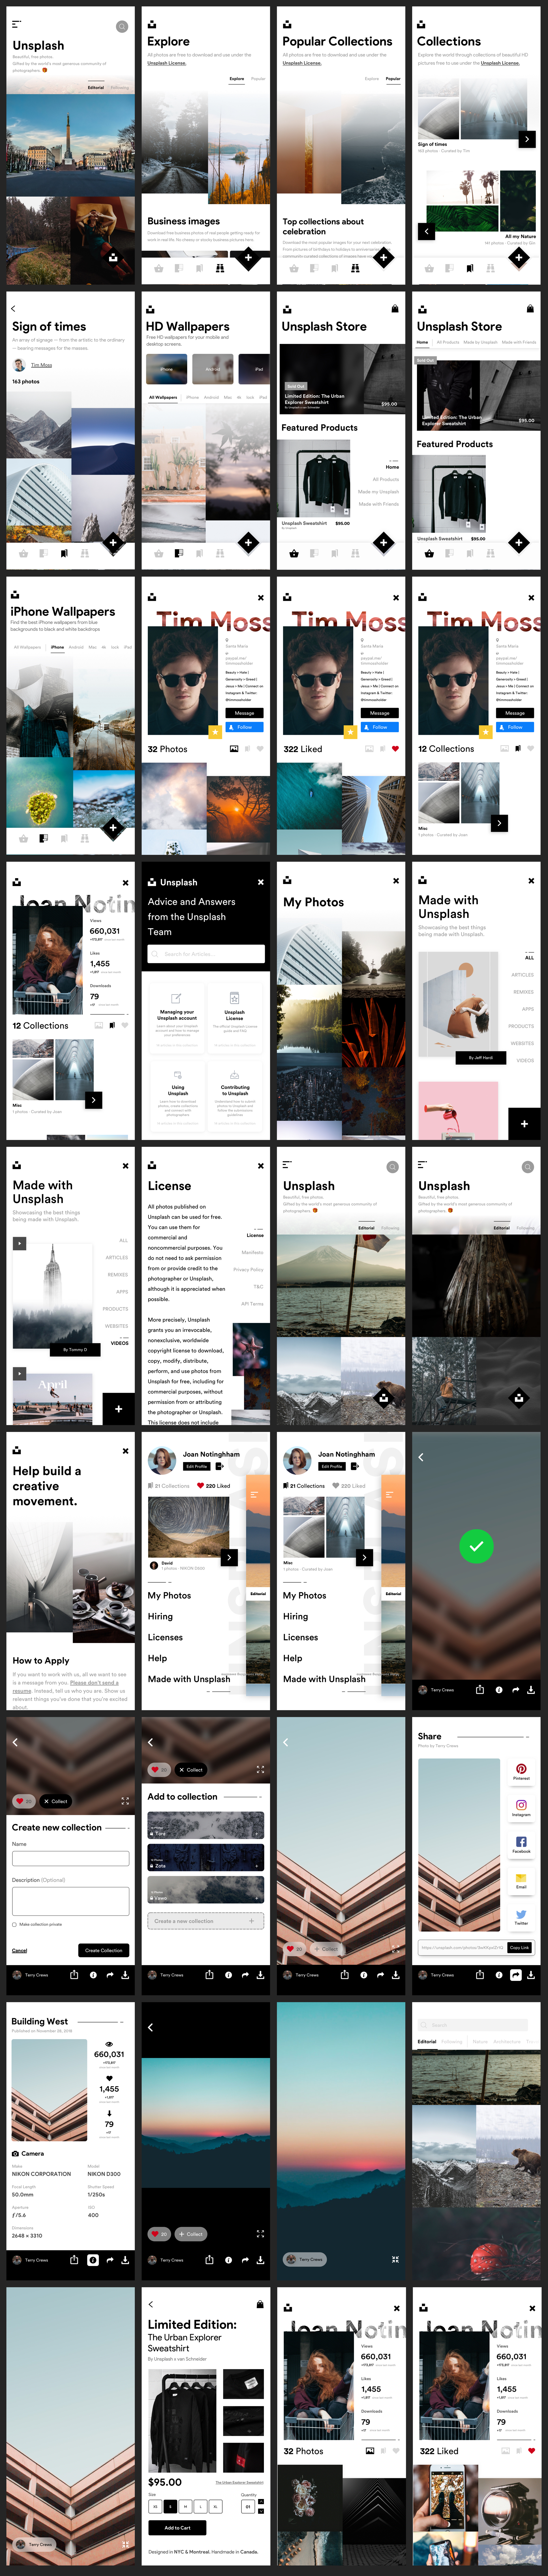 Unsplash UI Kit - Elegant and clean UI Kit for any kind of app. 35+ screens for you to get started.